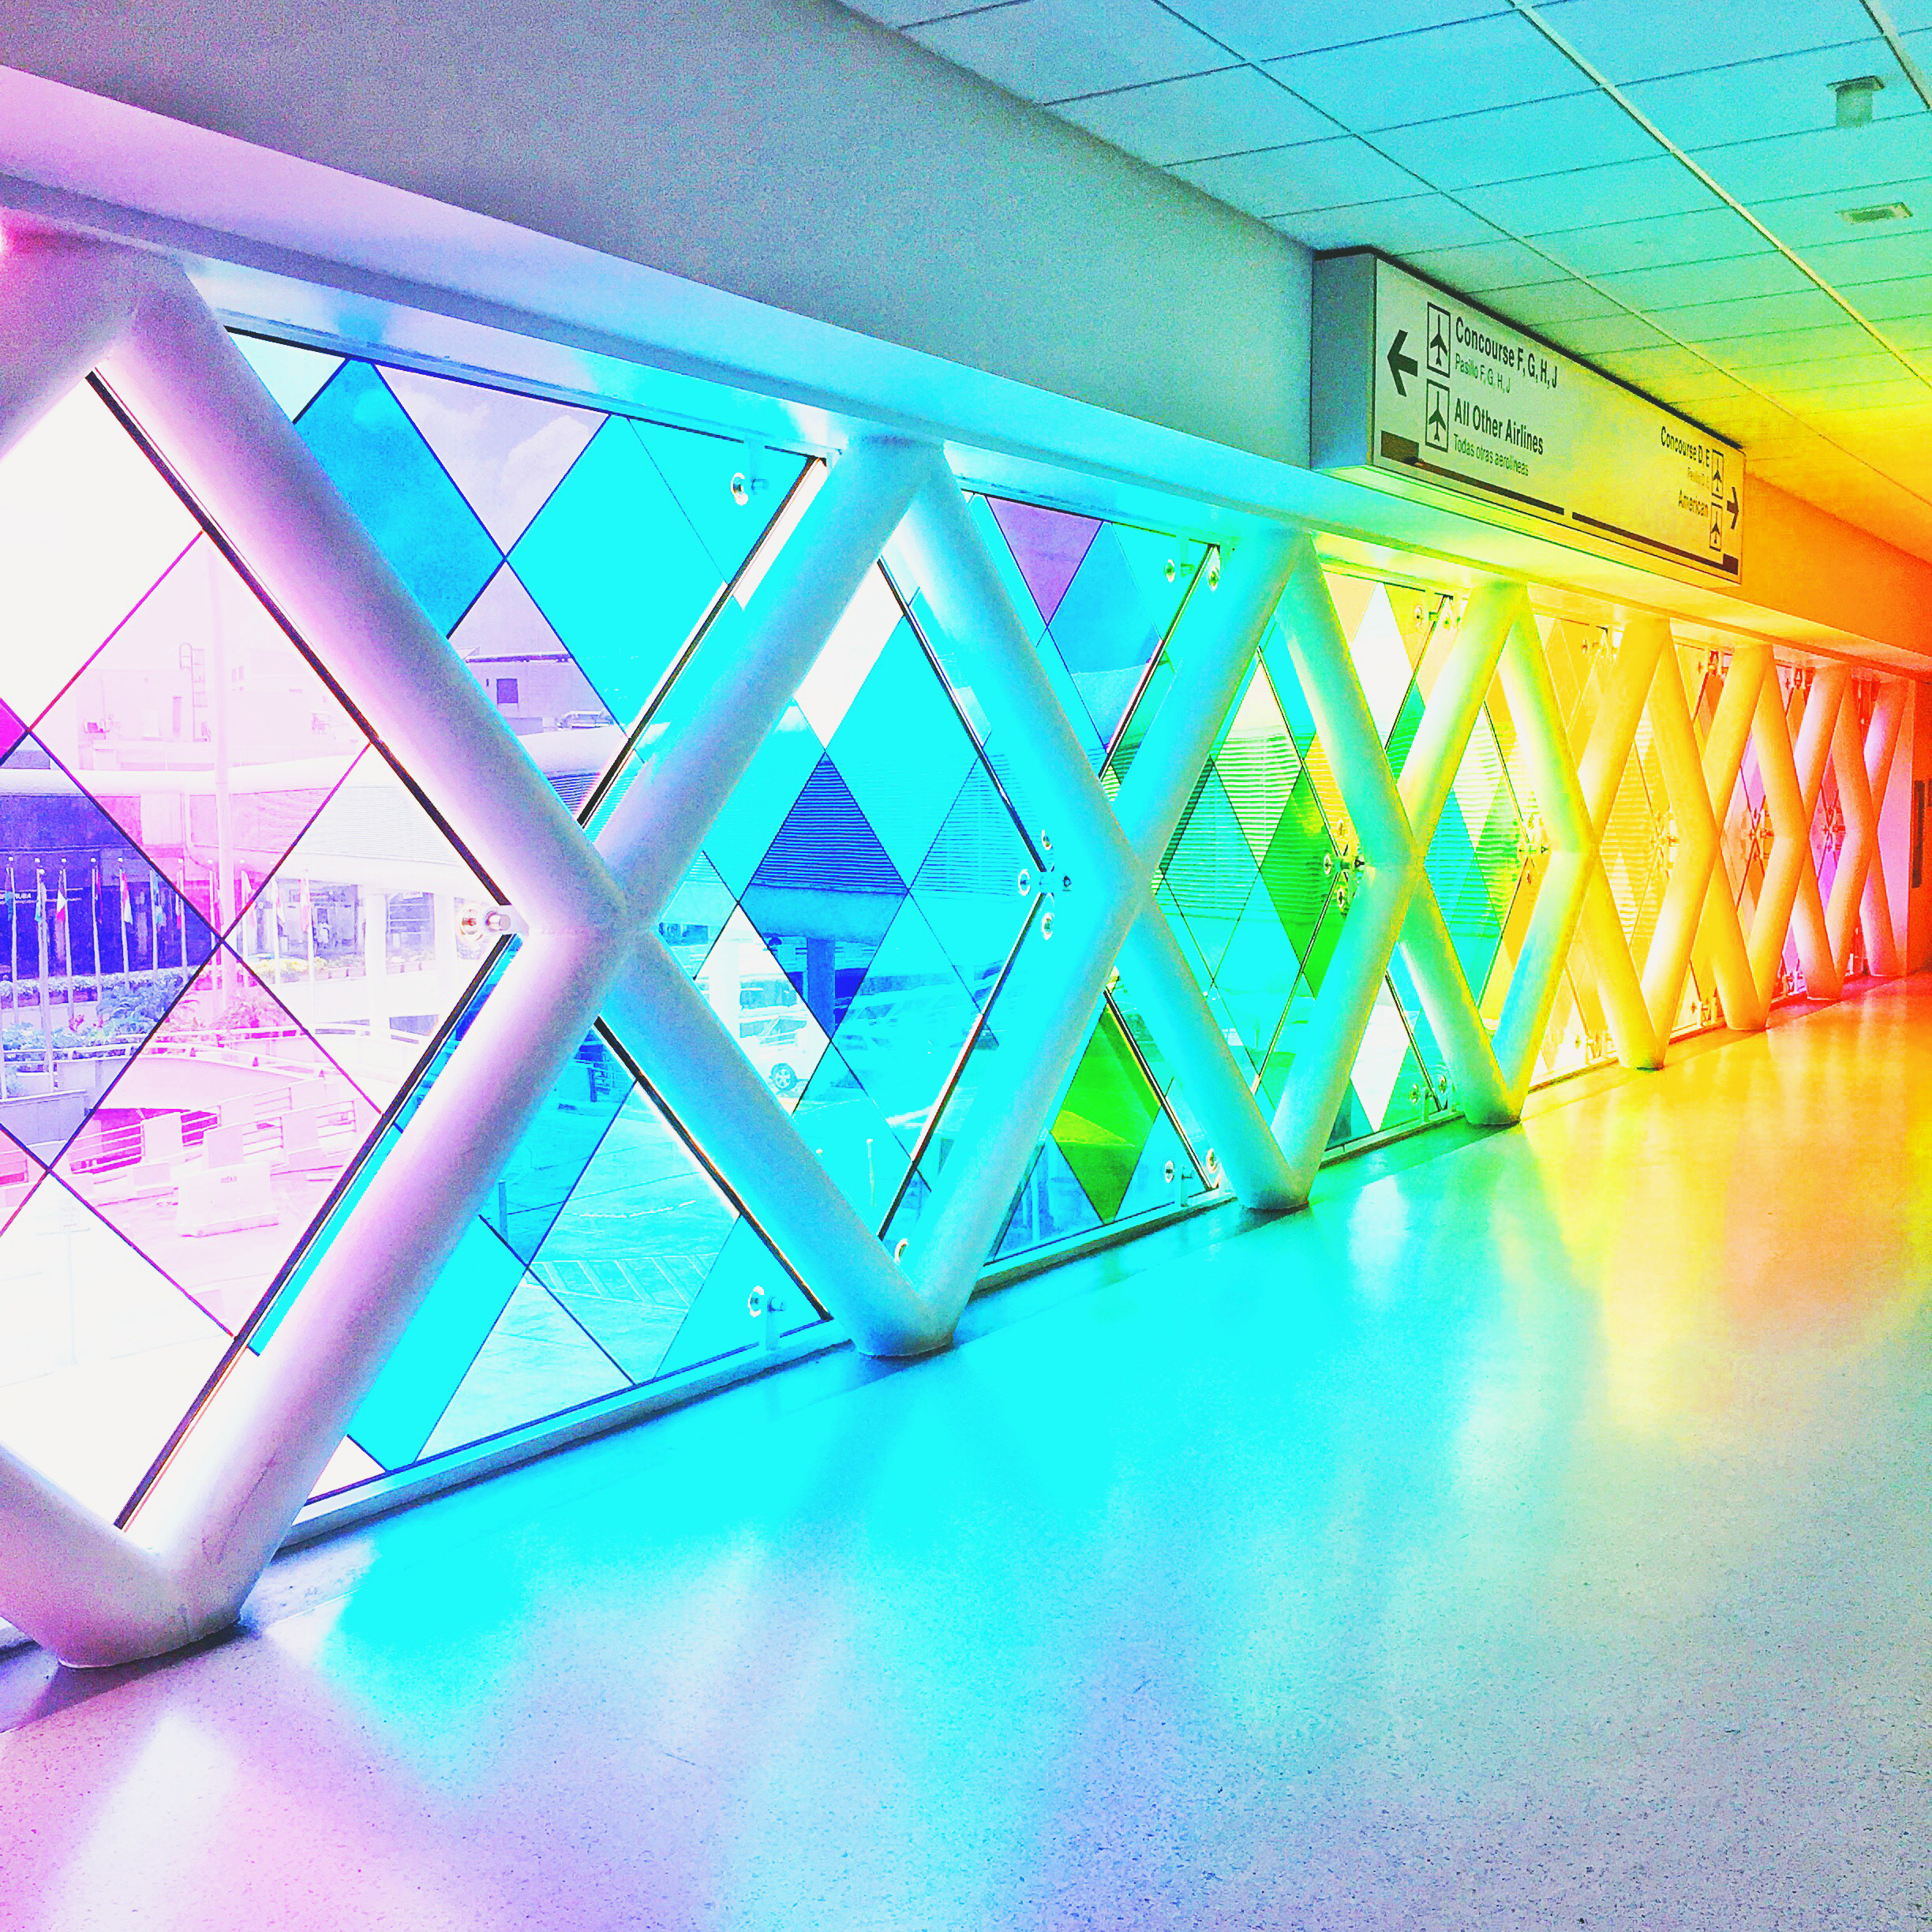 The colorful glass walkway at the Miami International Airport rental car center is a must see!